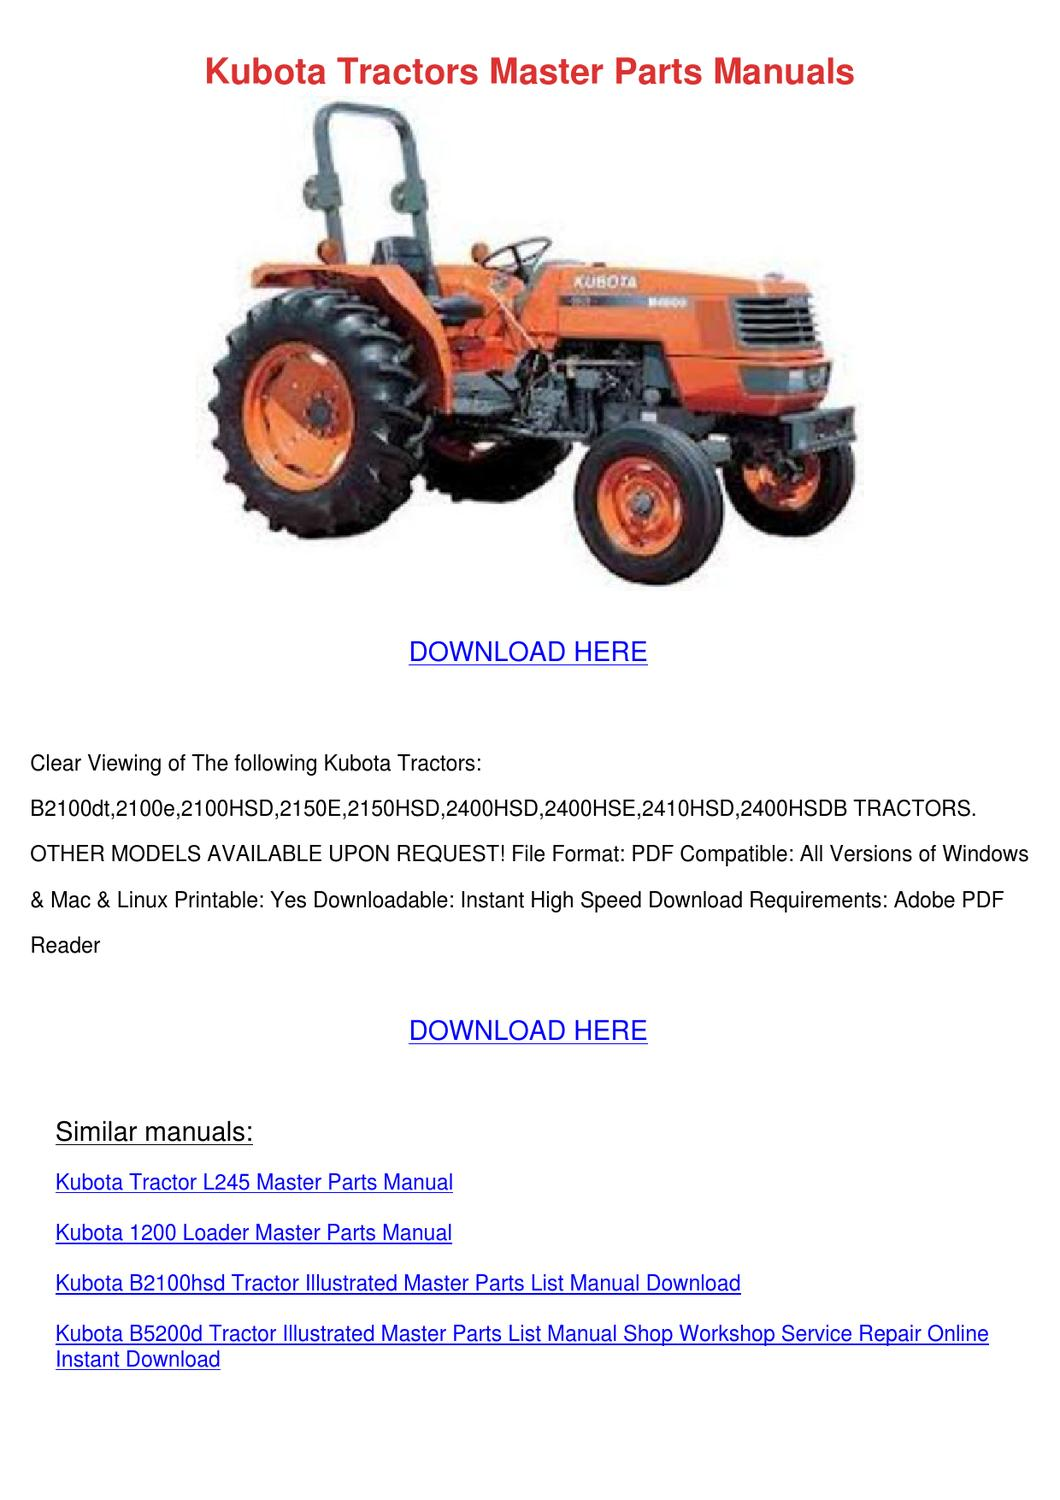 kubota tractors master parts manuals by hannahcoble issuu. Black Bedroom Furniture Sets. Home Design Ideas